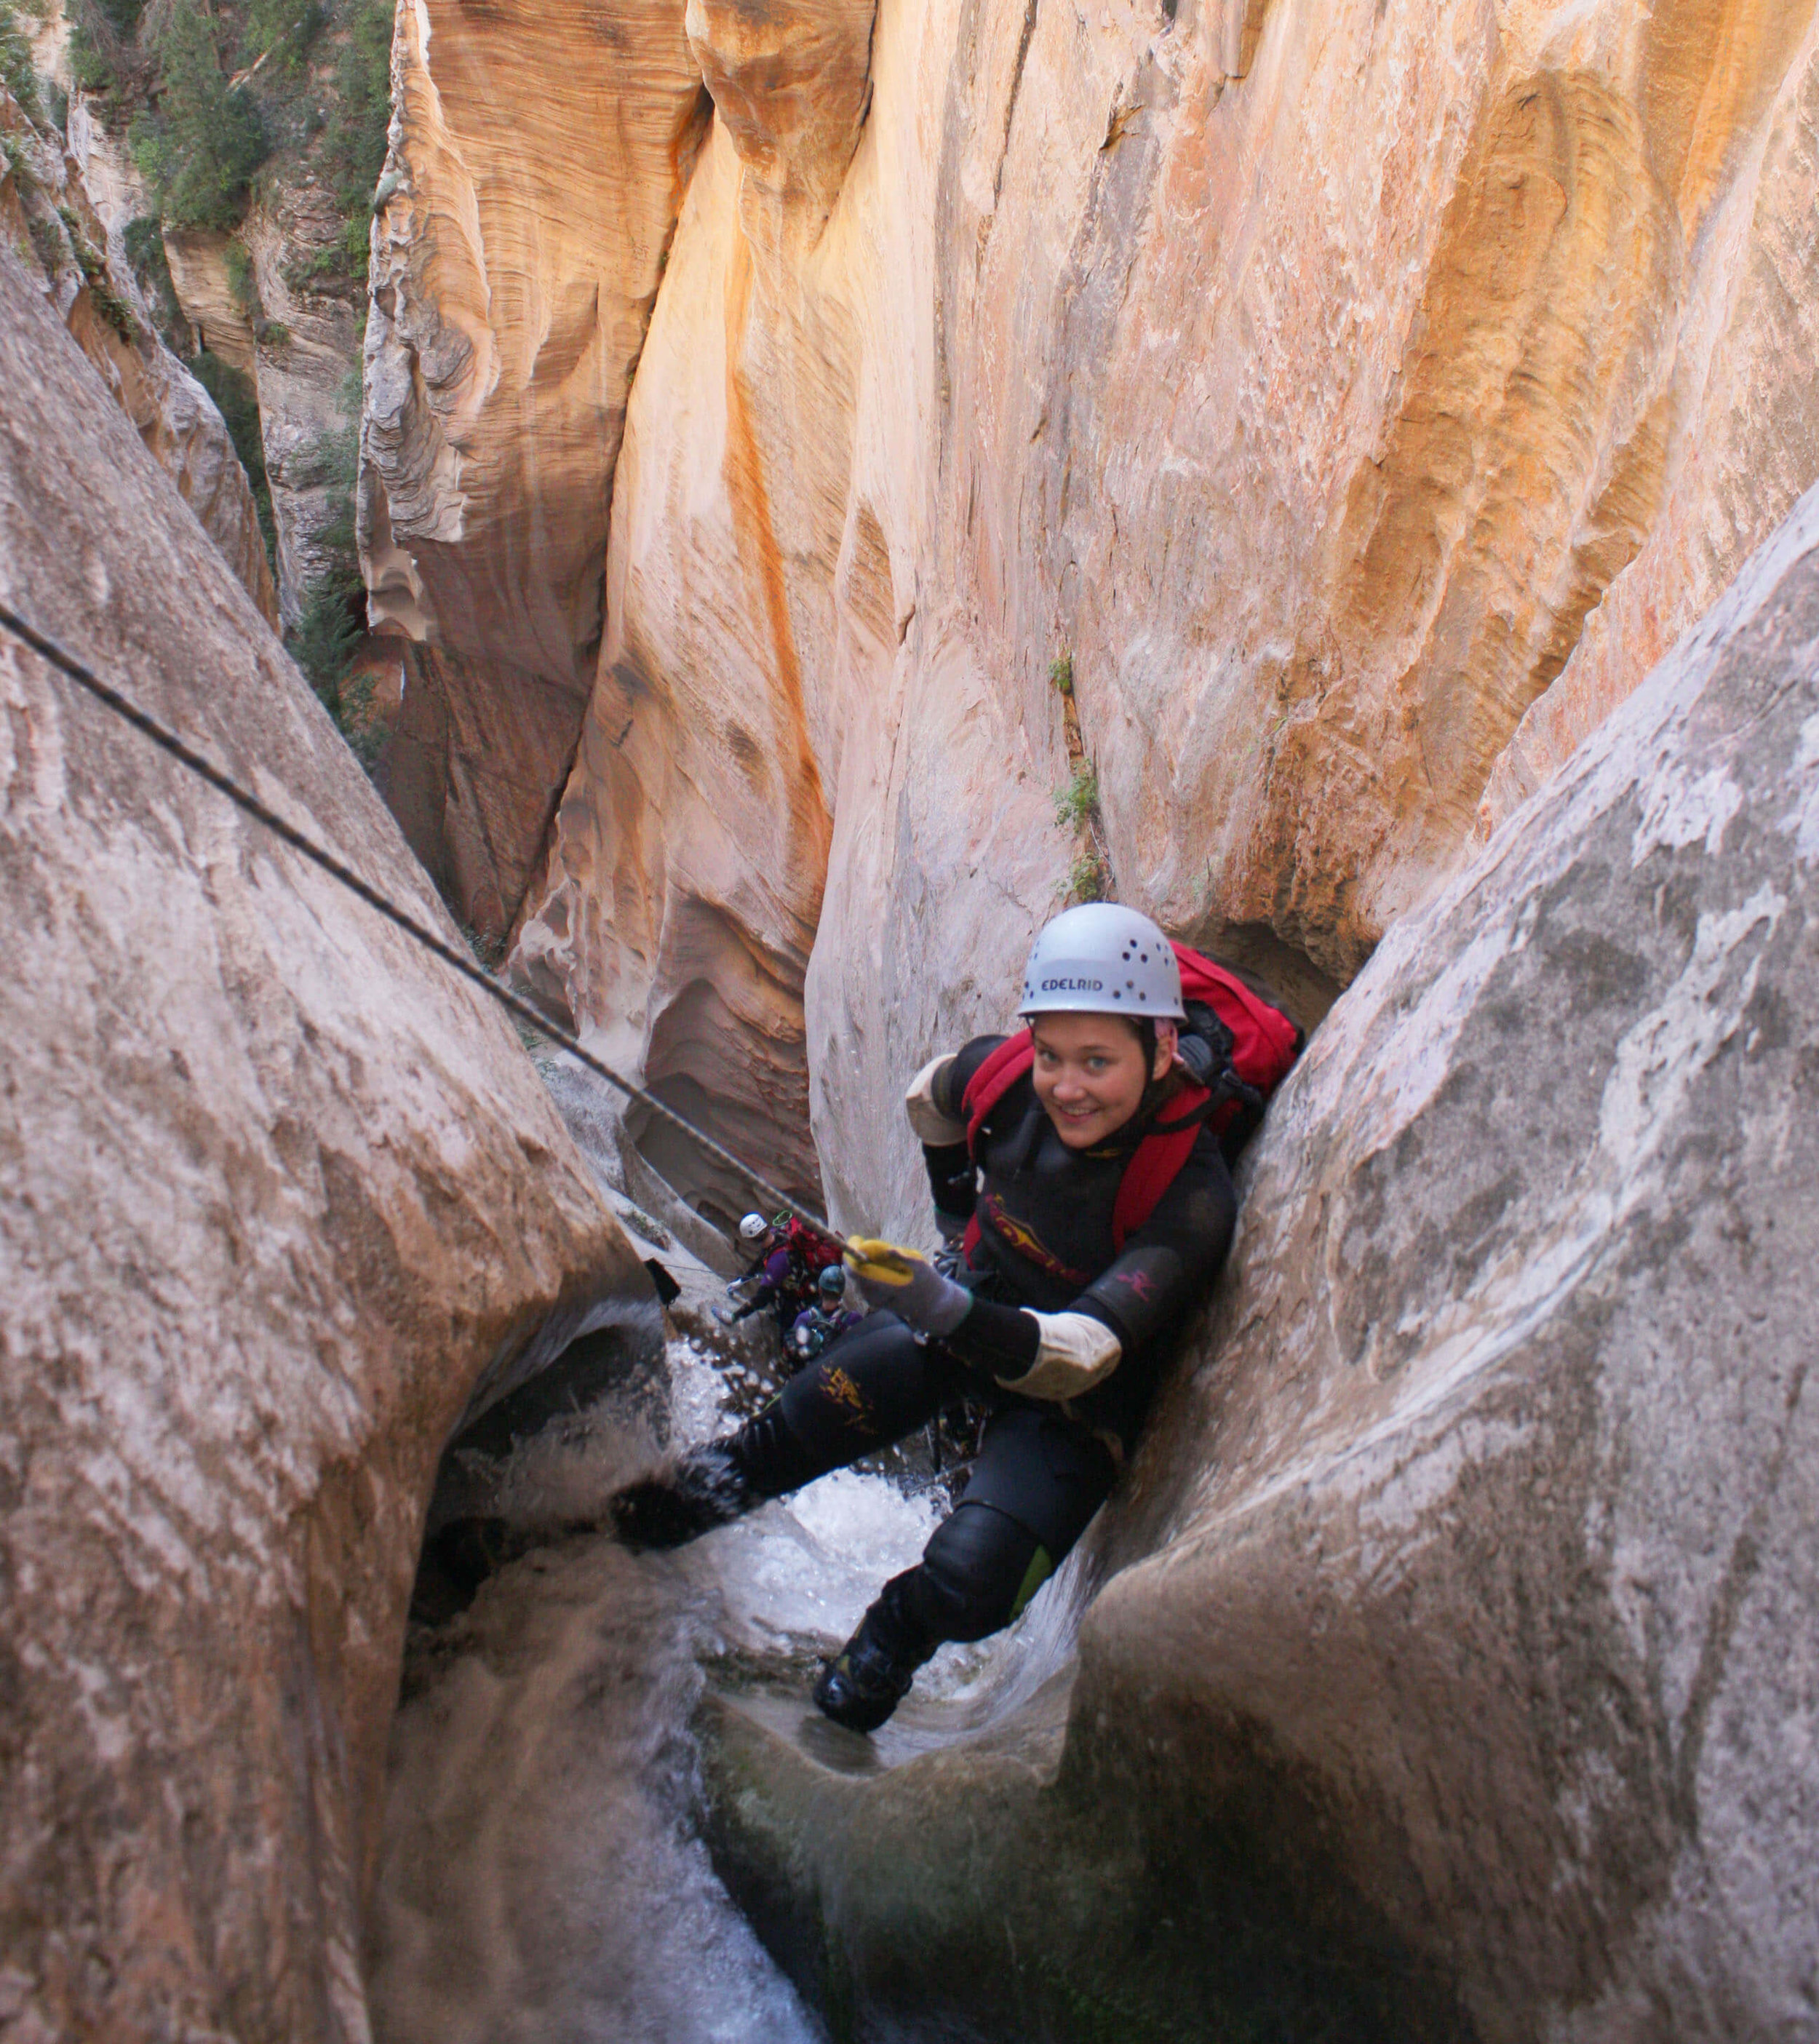 Amy rappelling in a Utah slot canyon.